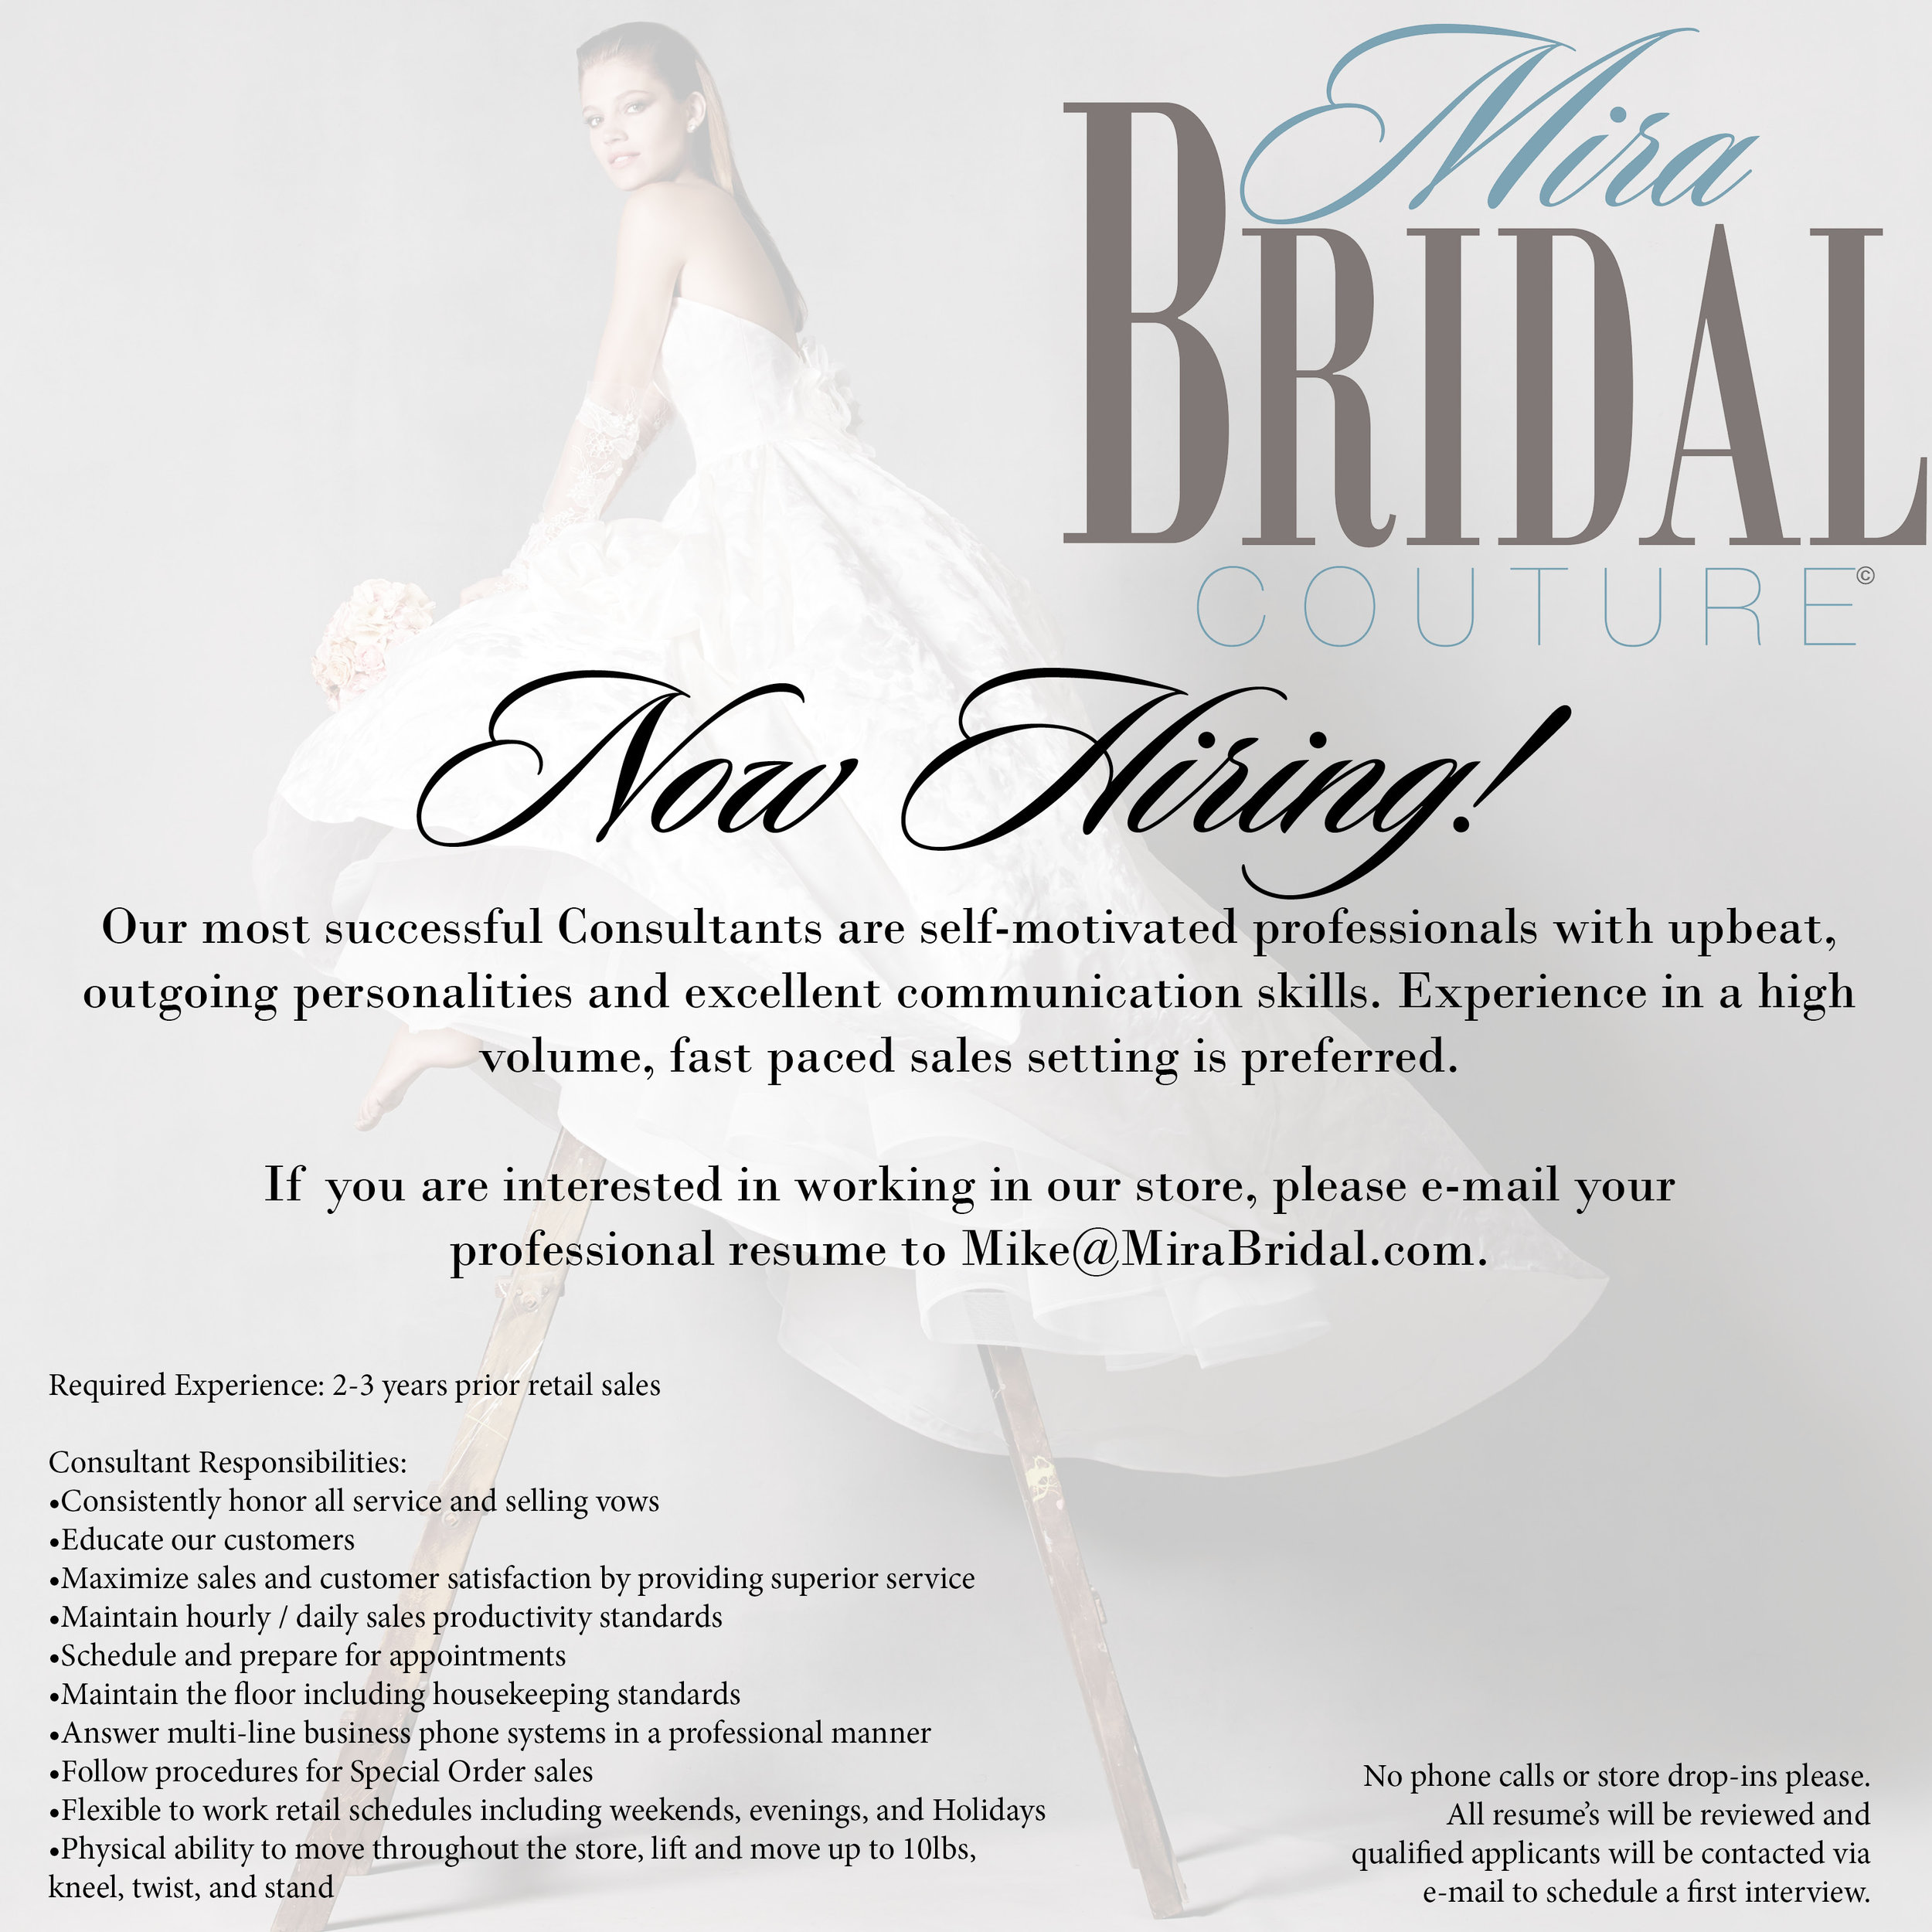 Now Hiring Mira Bridal Couture